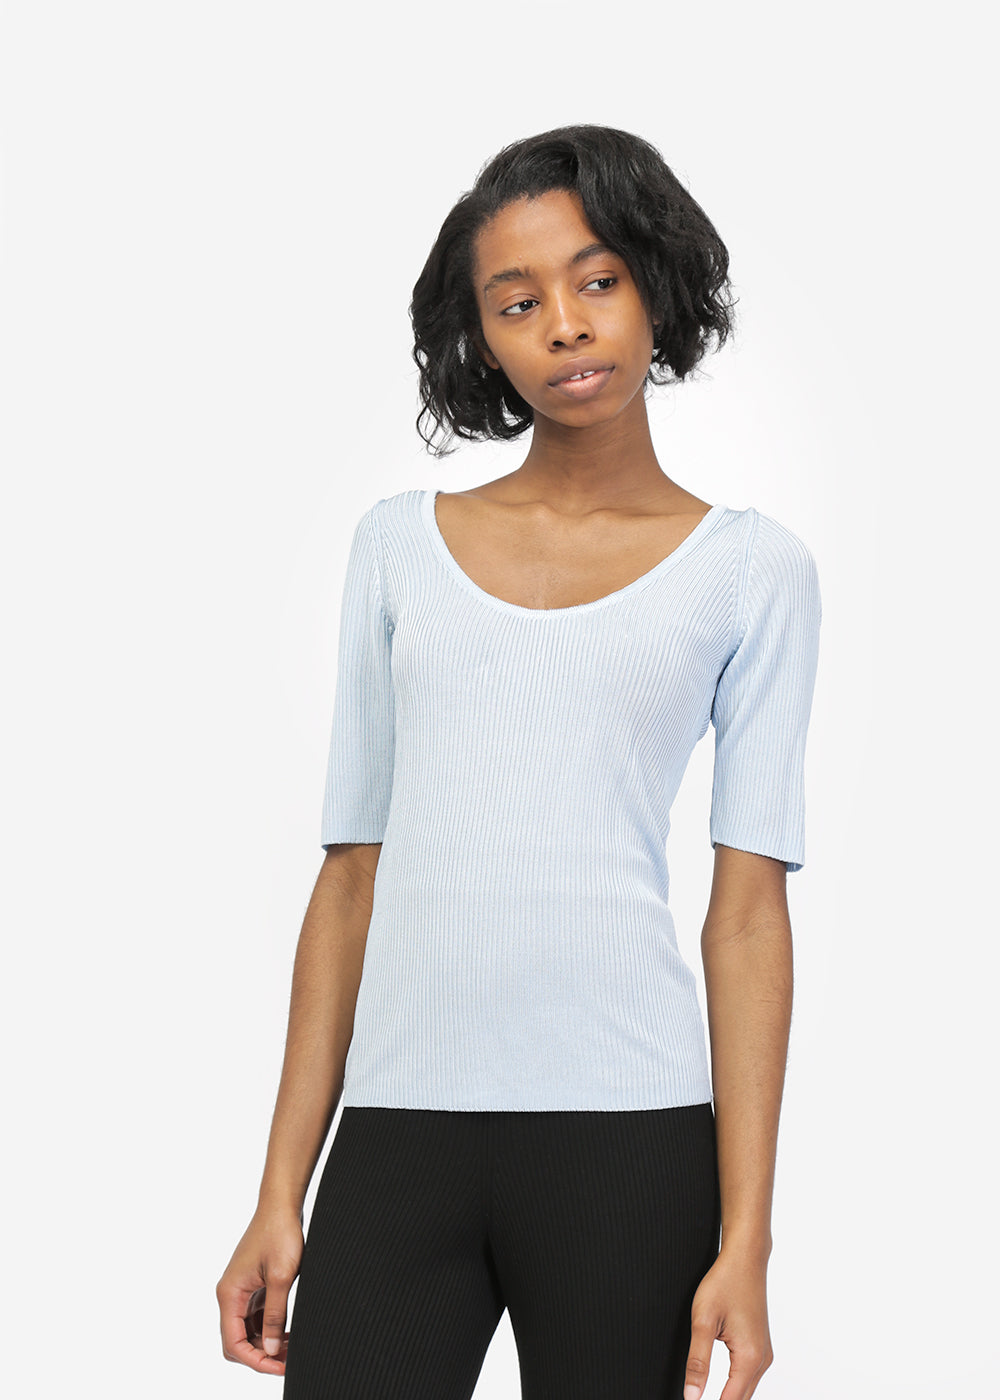 Suzanne Rae Short Sleeve Scoop Neck Knit — New Classics Studios